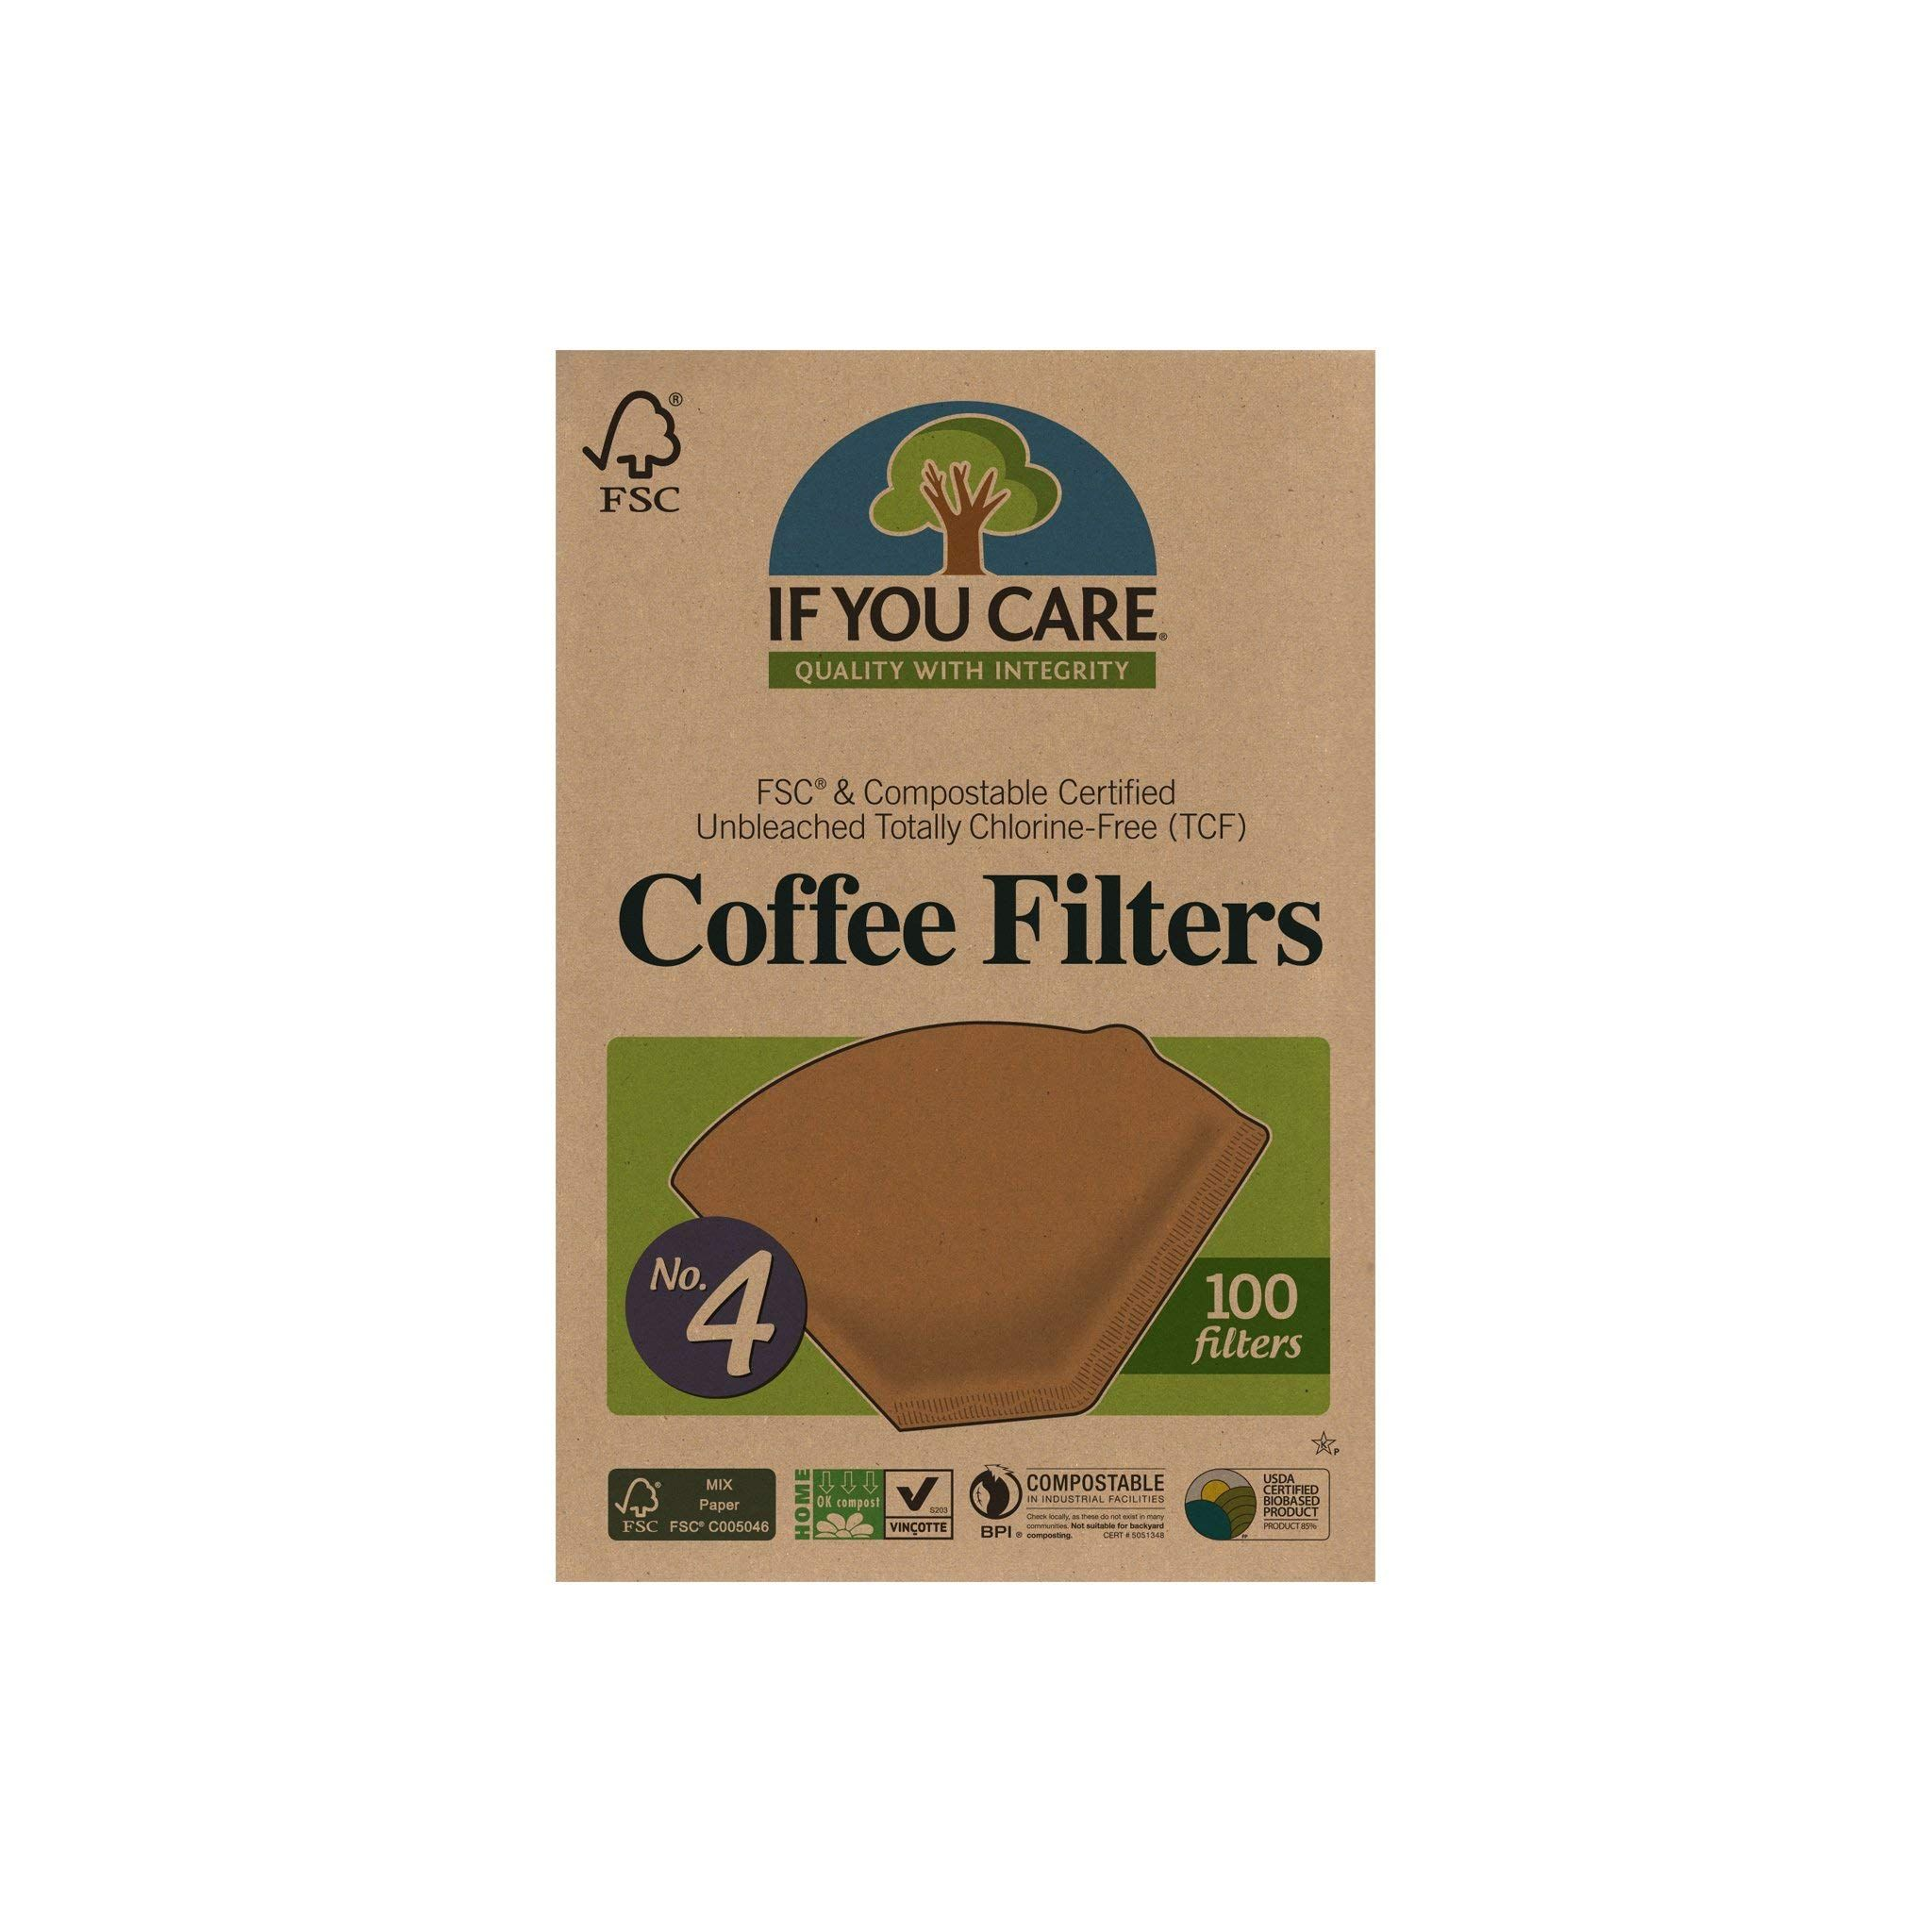 If you care unbleached coffee filters 4 cone 100 count